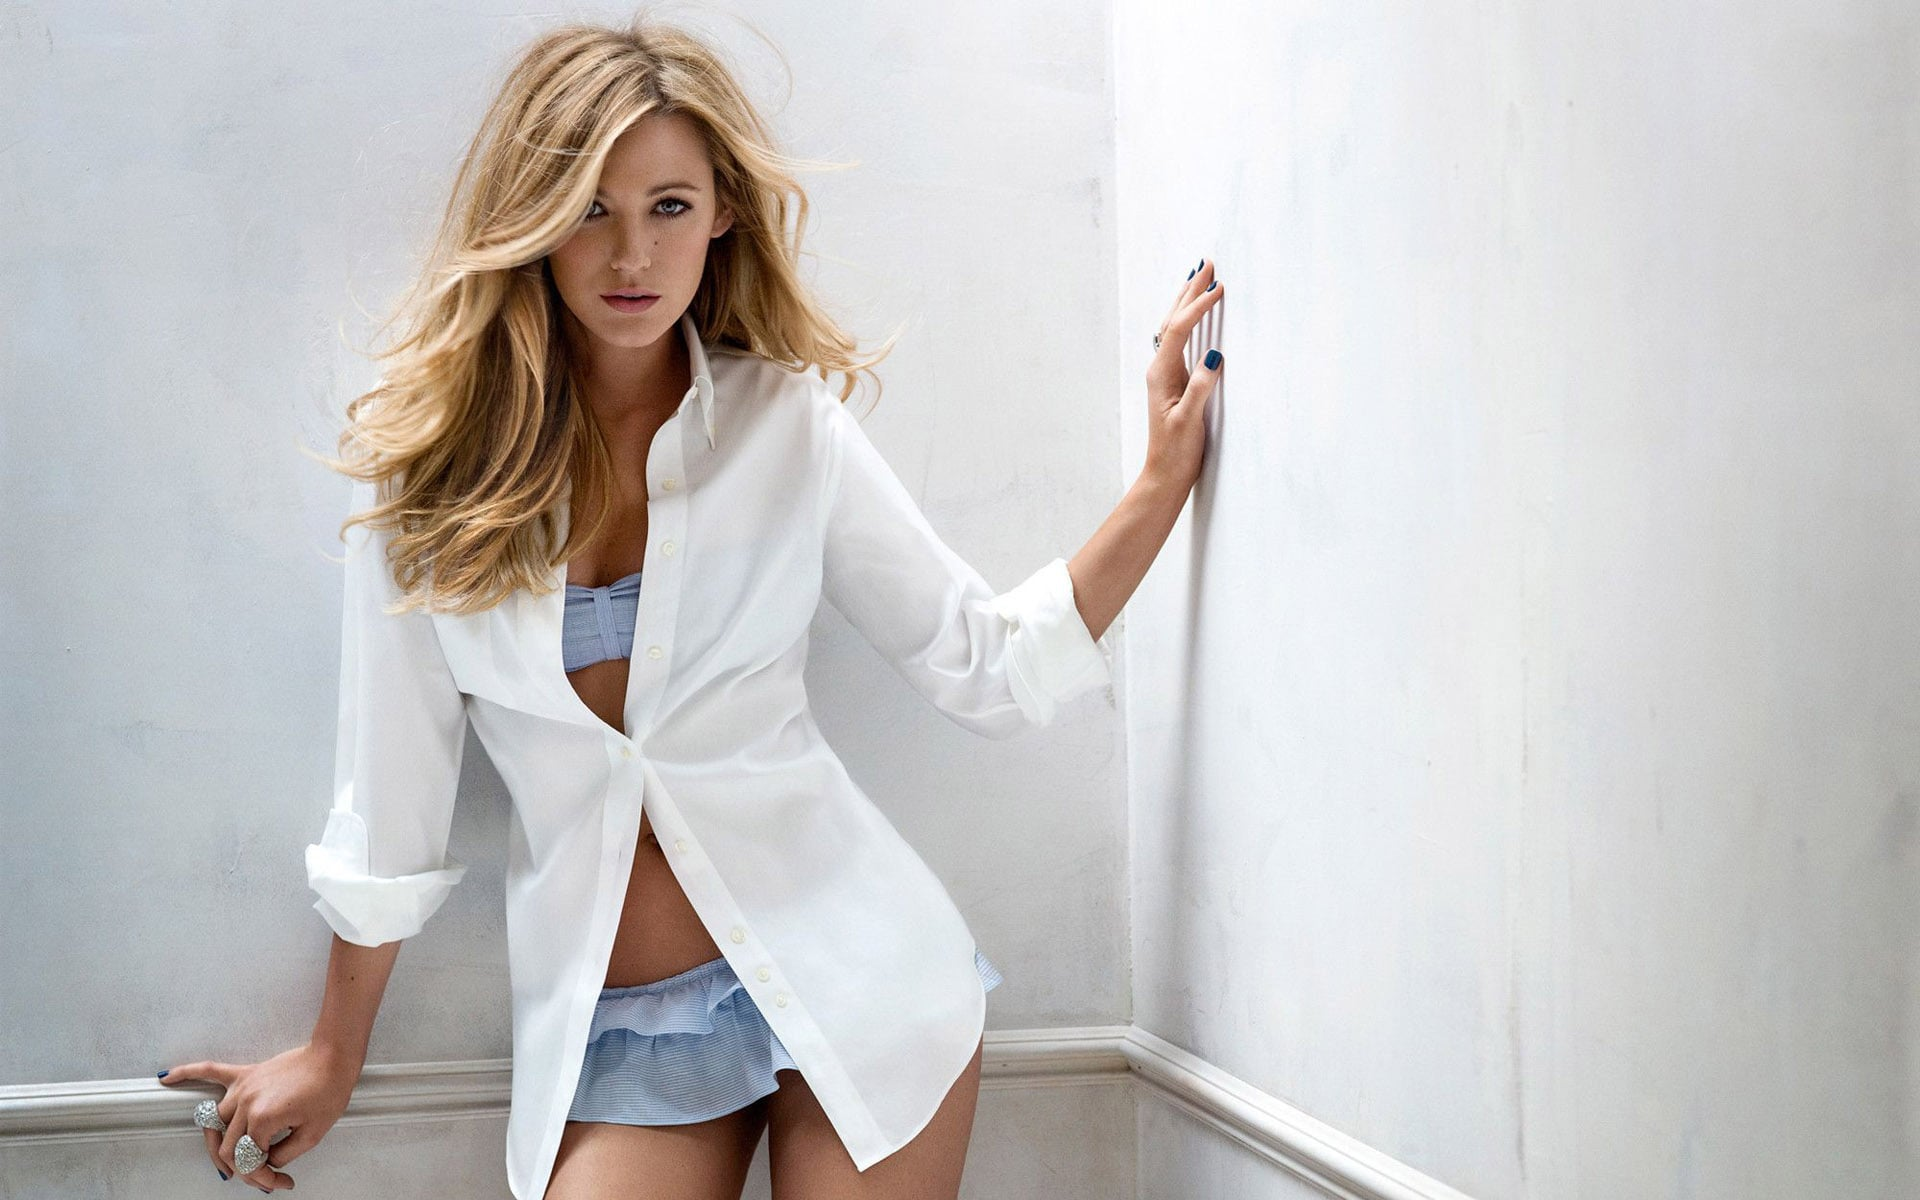 Blake-Lively-Sexy-Photoshoot